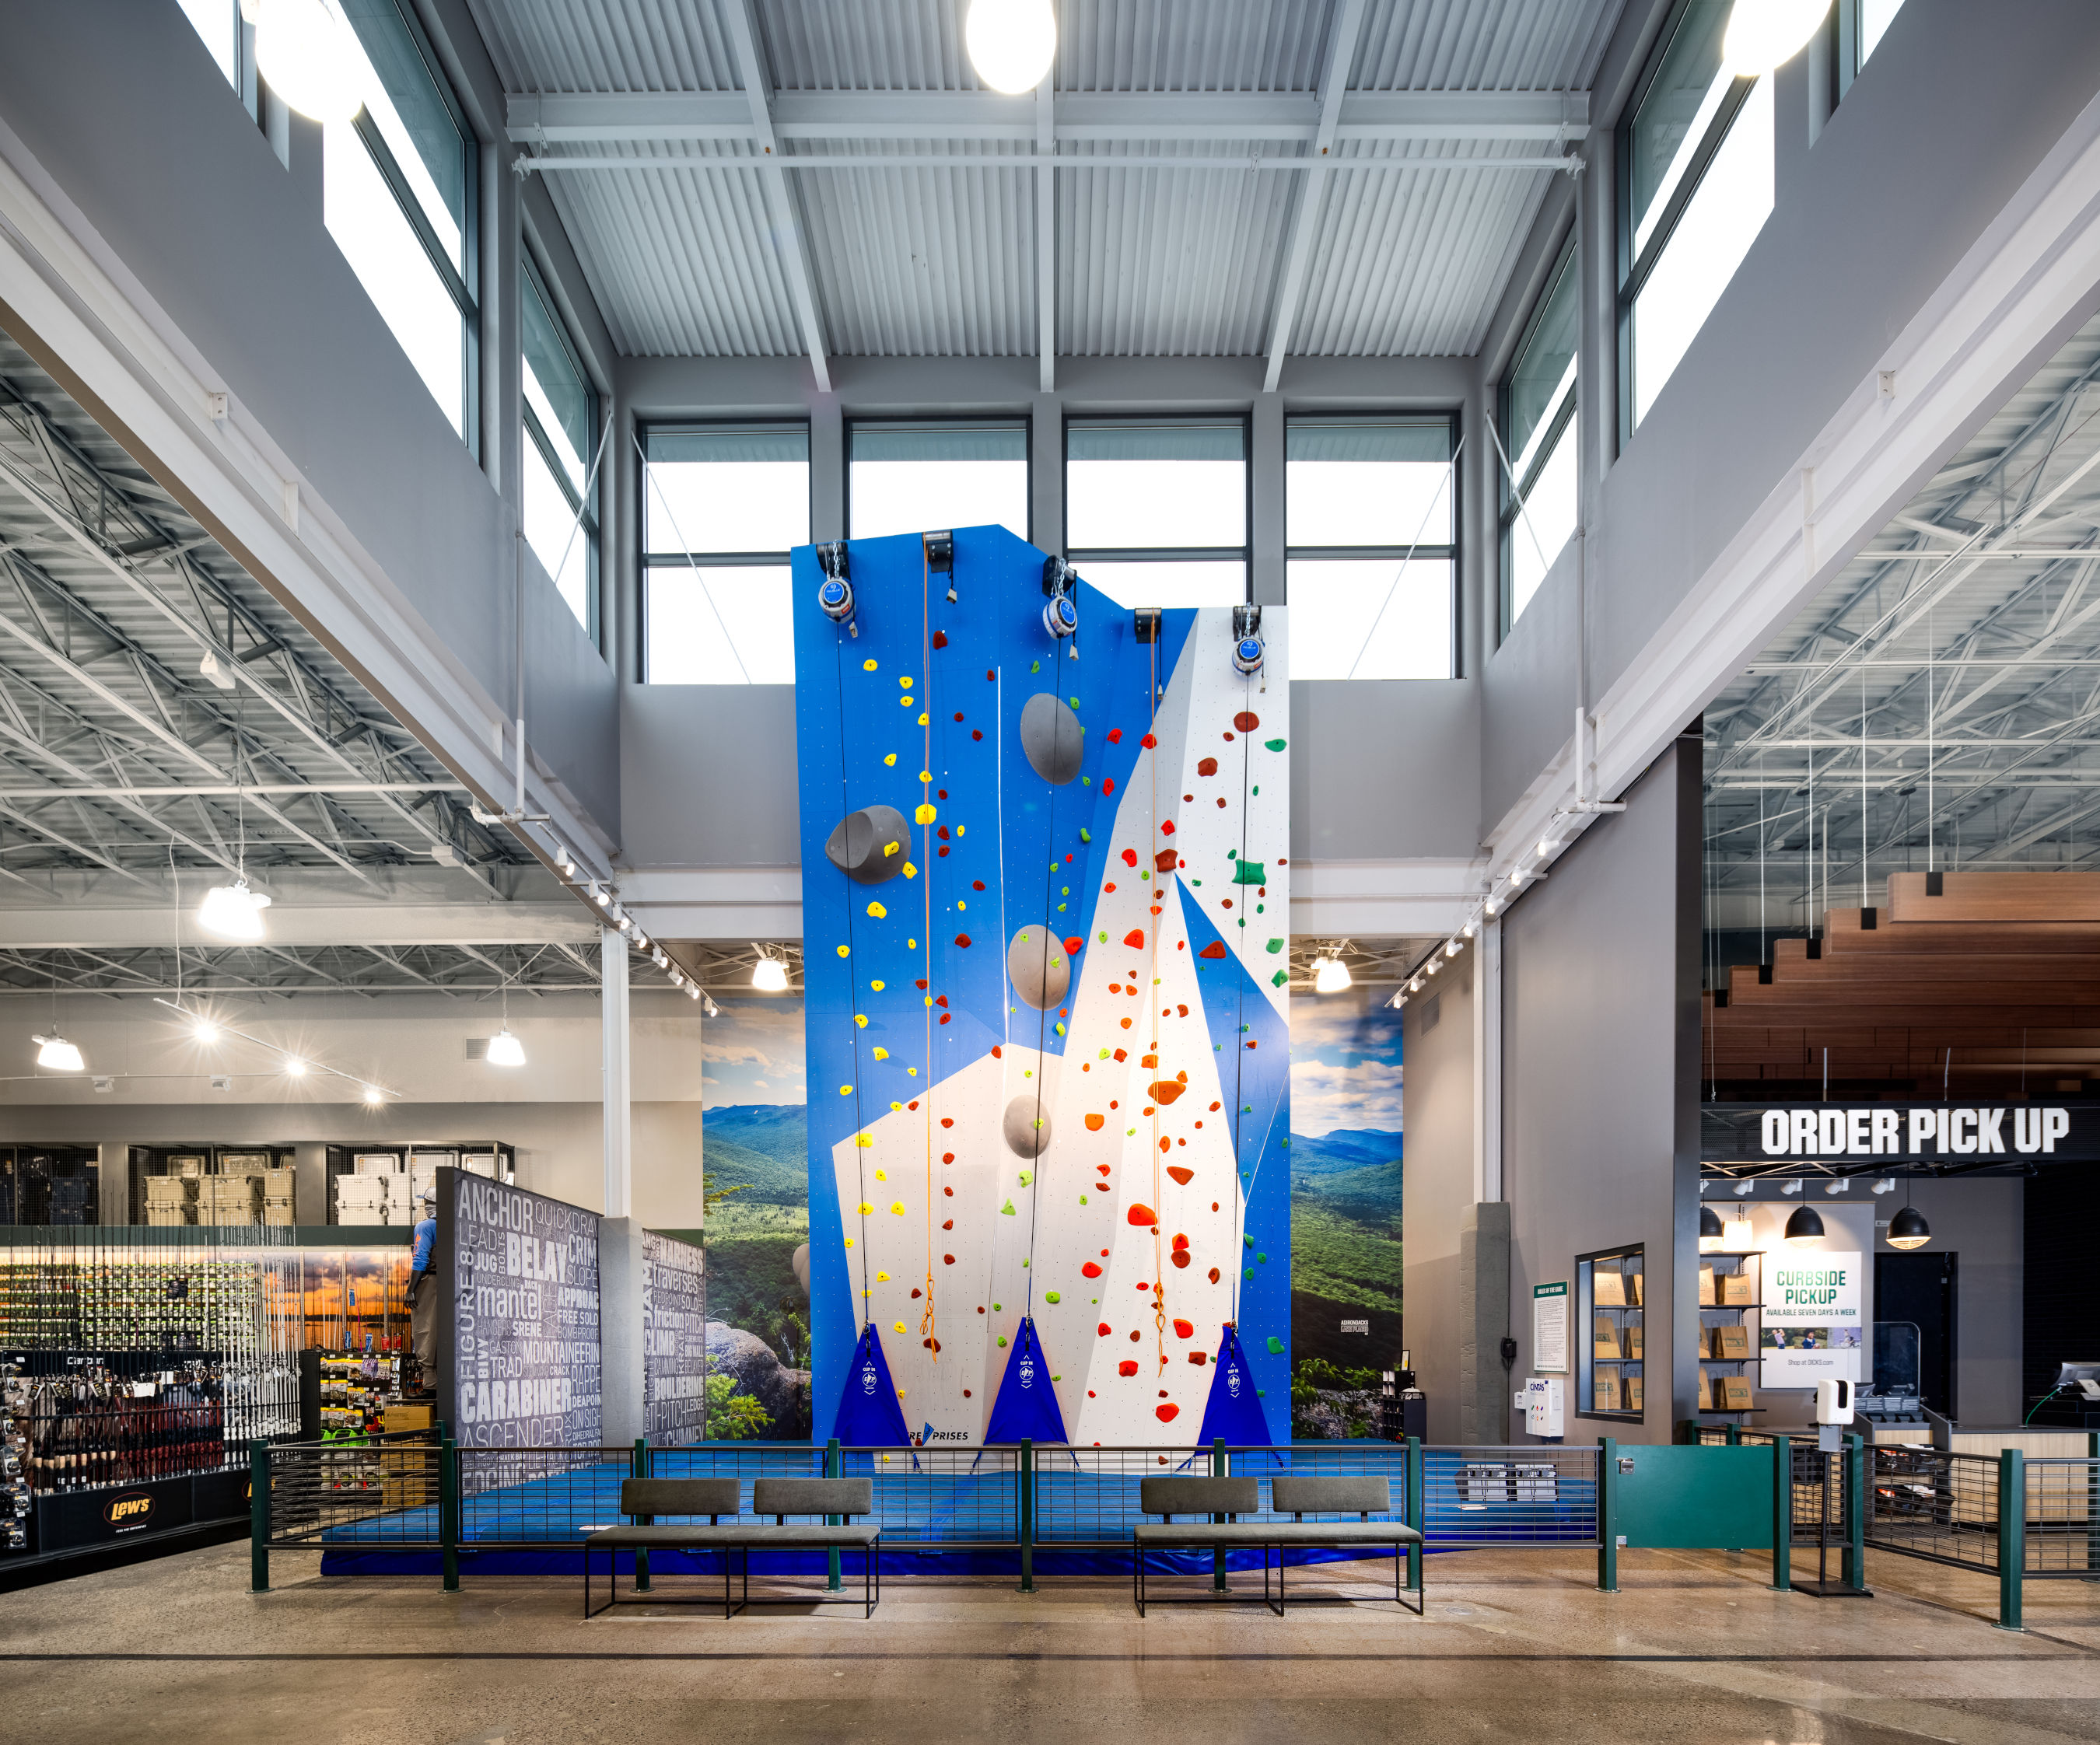 DICK'S Sporting Goods Announces Grand Opening of New Concept Store 'DICK'S House of Sport' And Expands Offerings in Select Golf Galaxy Locations Nationwide - DICK'S House of Sport